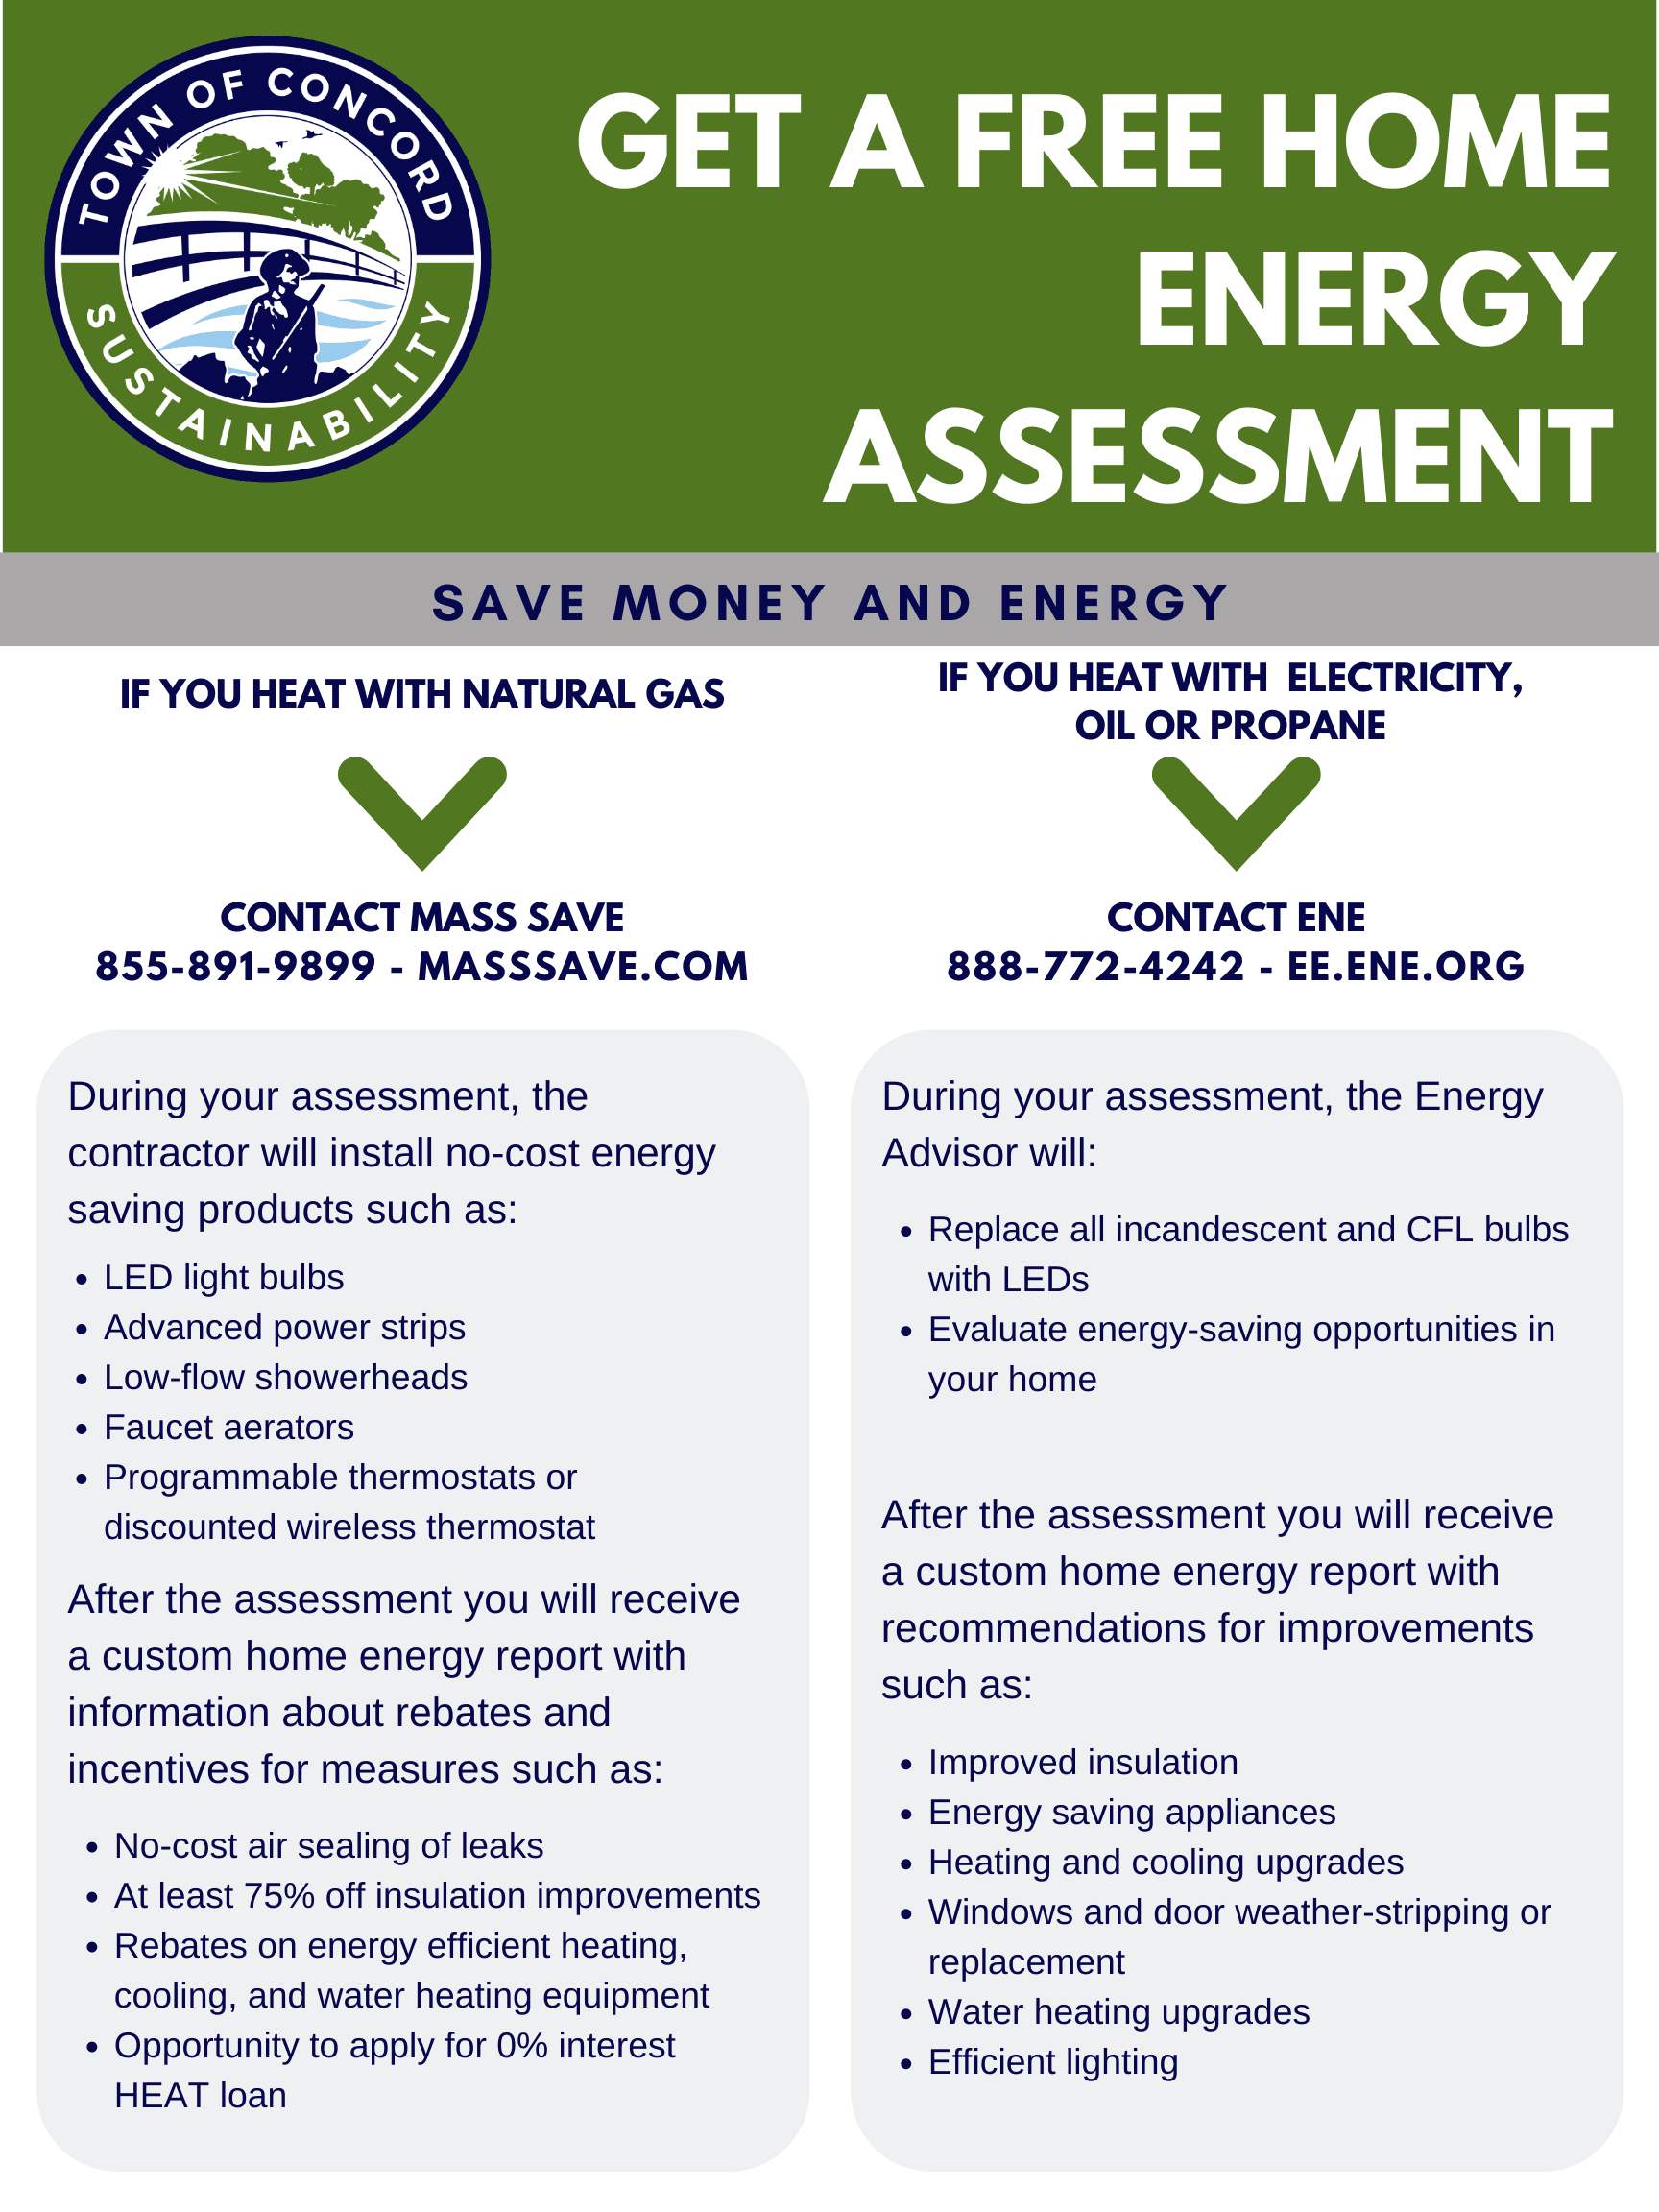 Home energy assessment 2020